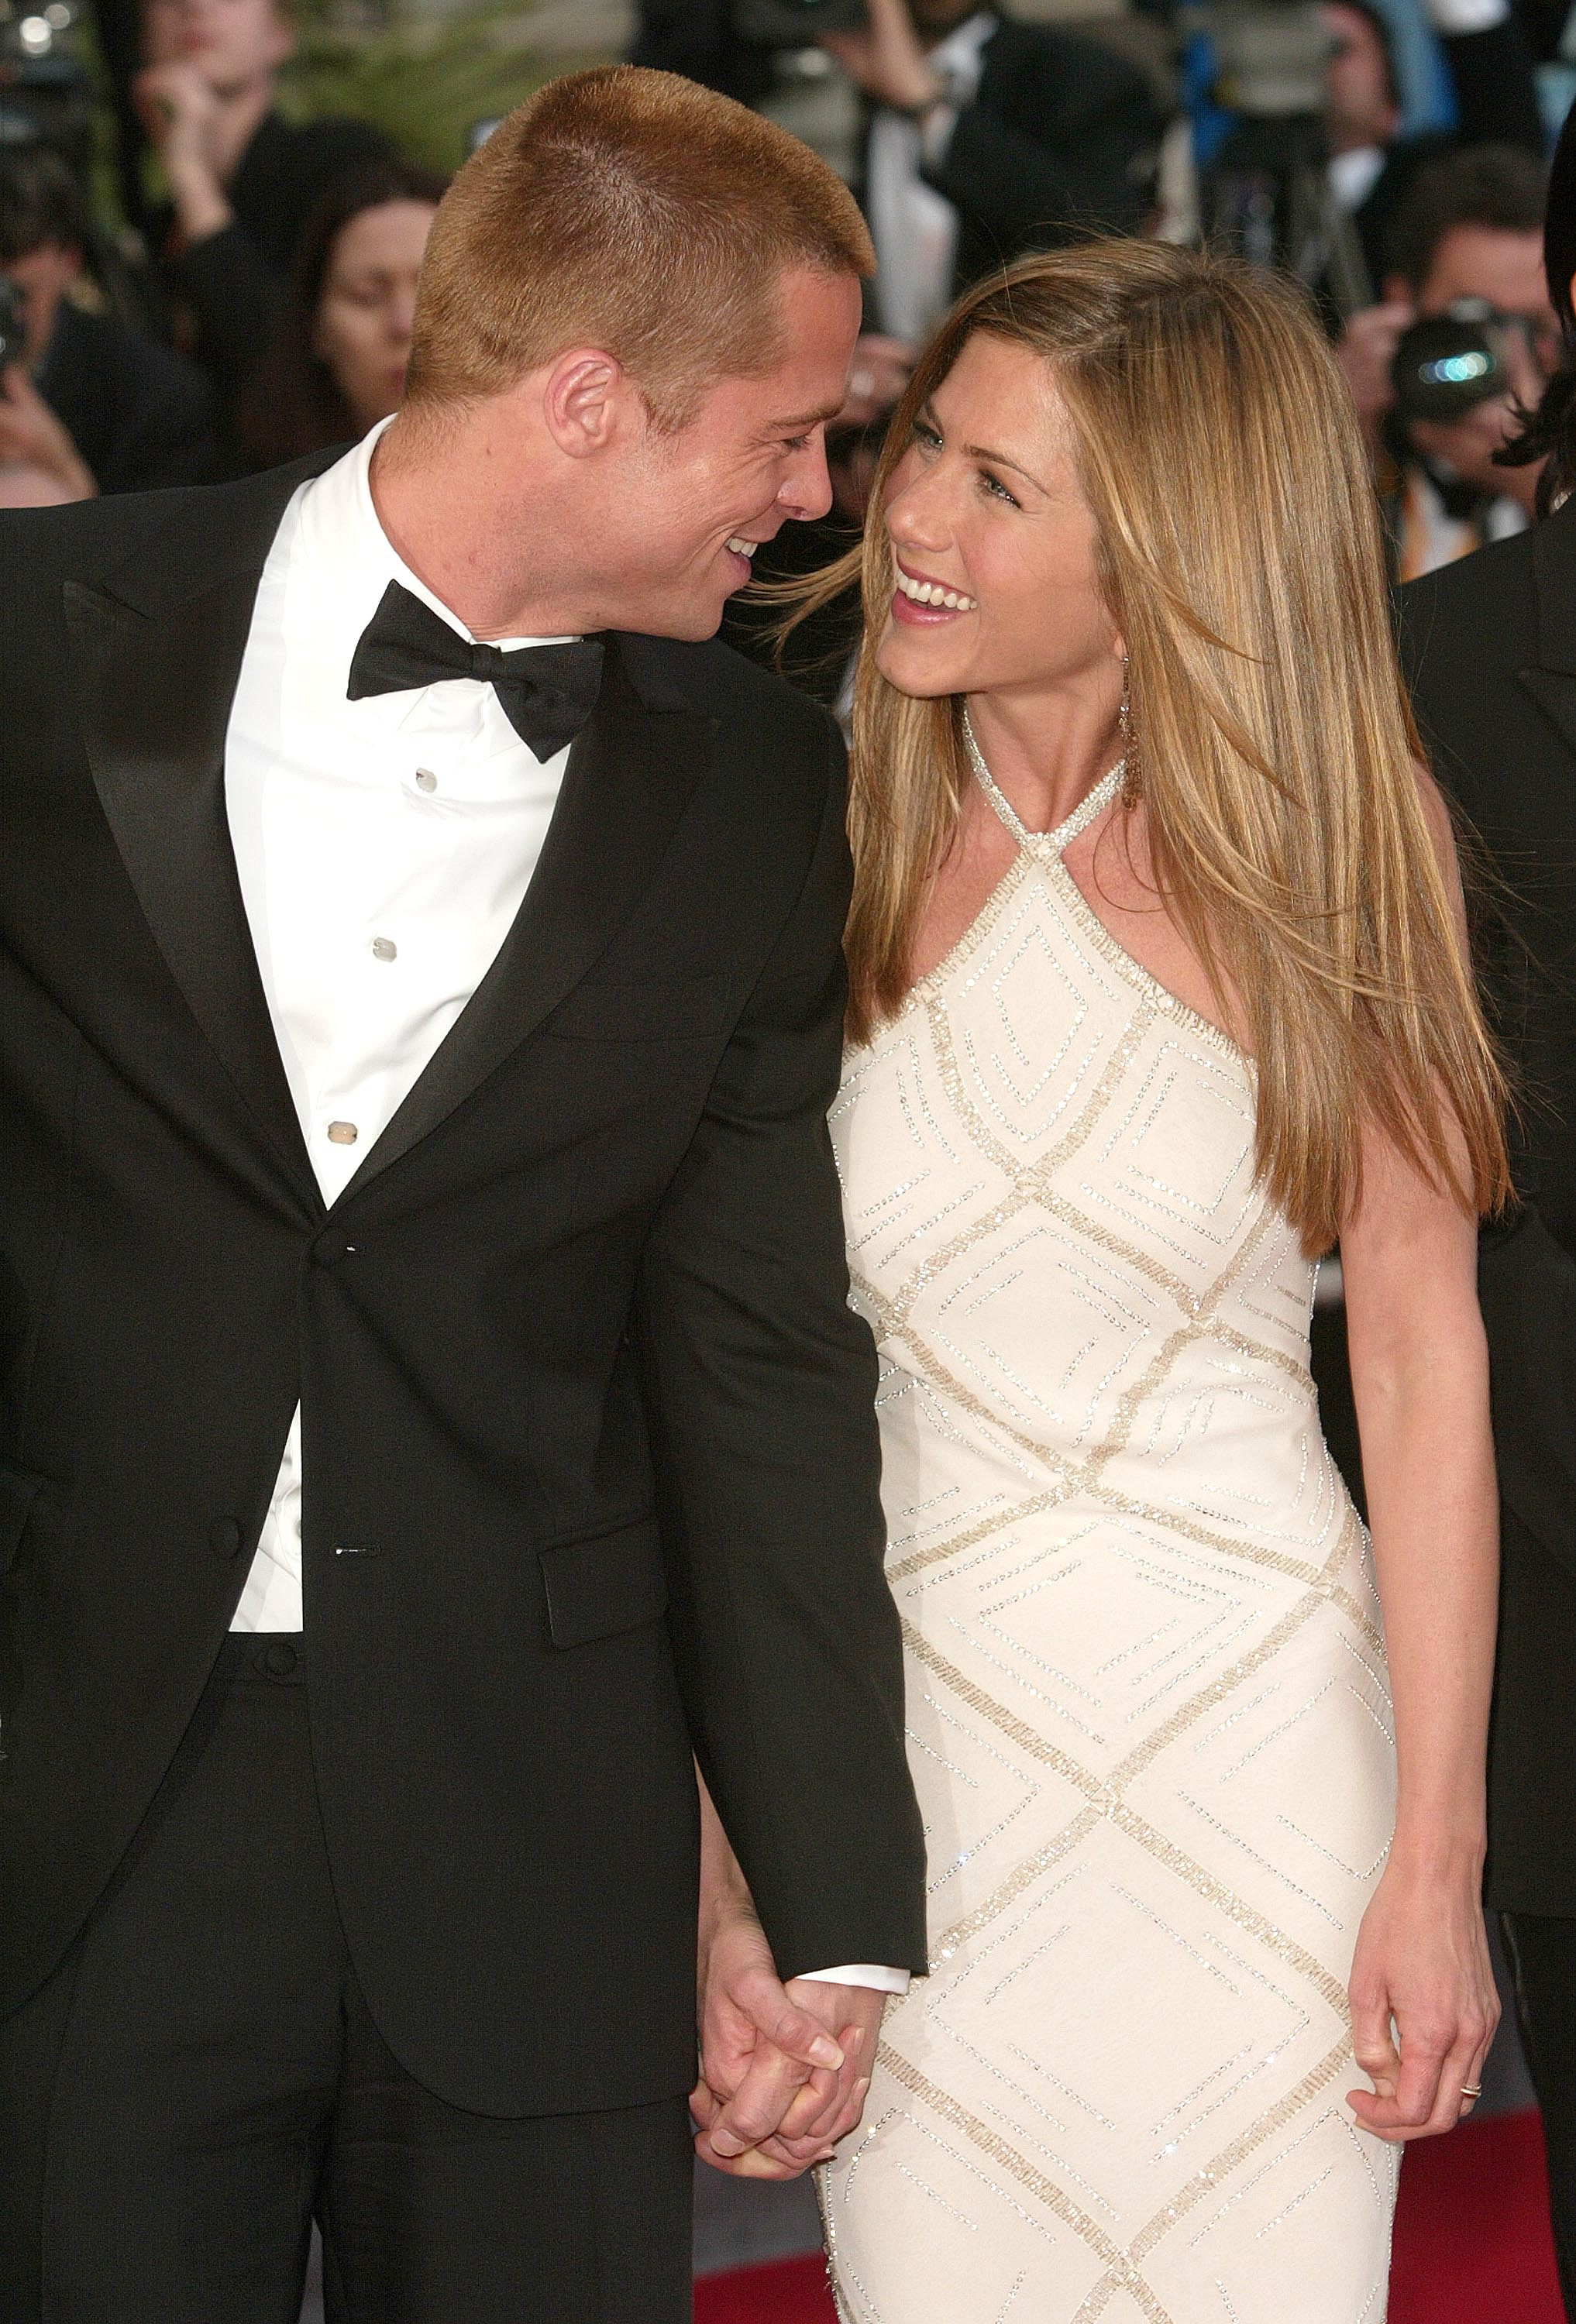 Actor Brad Pitt and wife actress Jennifer Aniston attend the World Premiere of the epic movie 'Troy' at Le Palais de Festival in Cannes, France. Aniston wears a dress by Versace. (Getty Image)